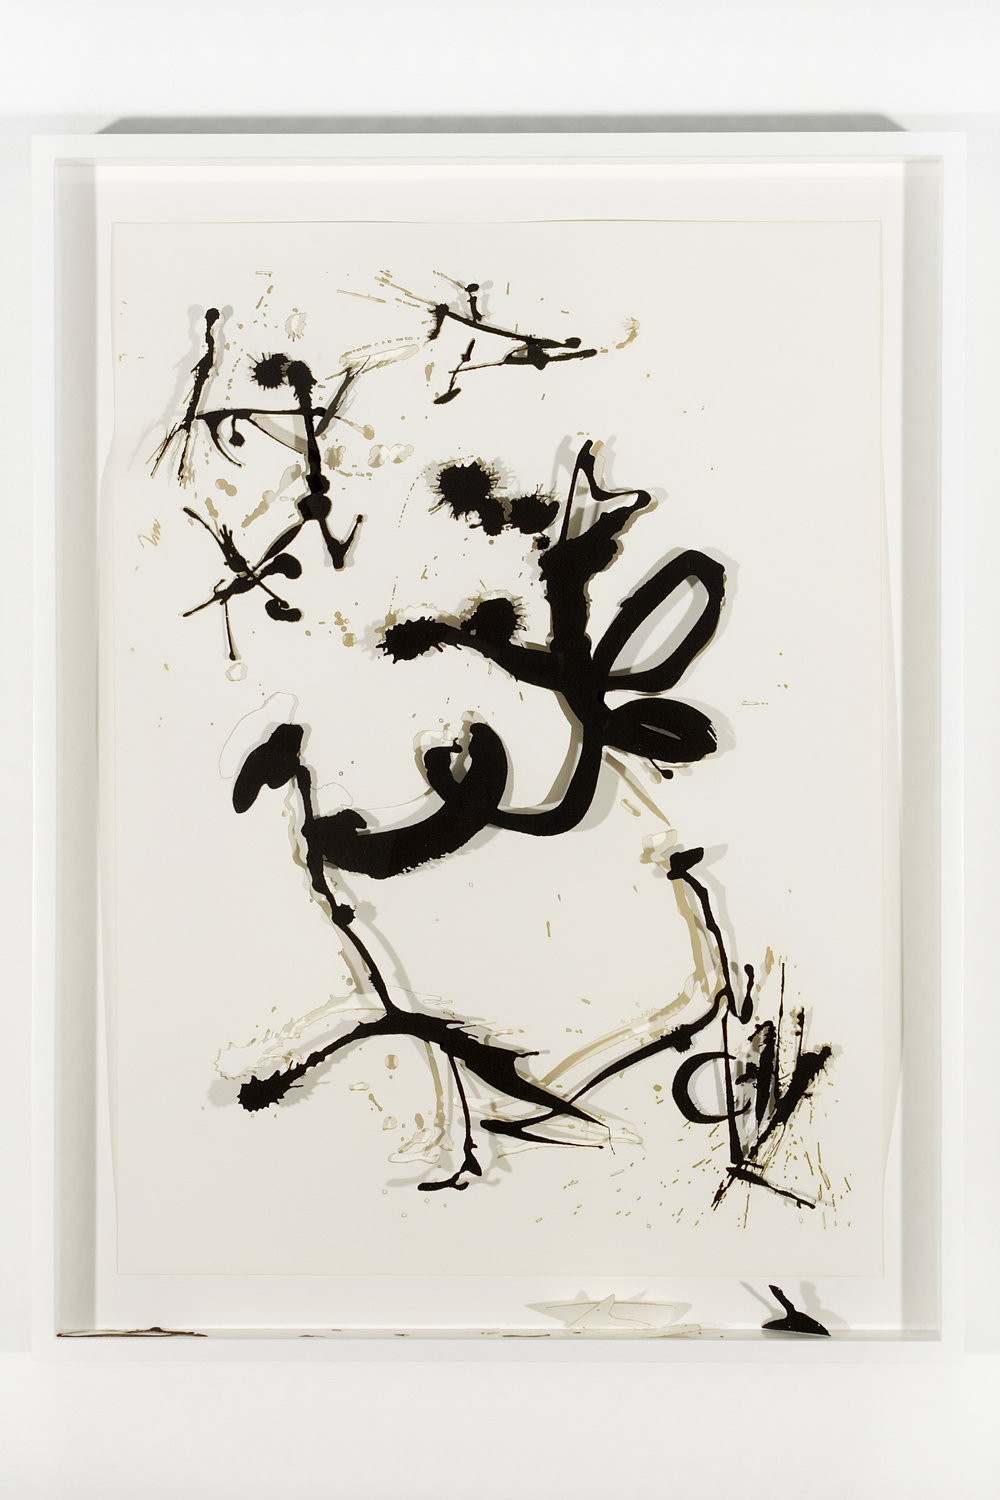 """Collapsed Drawing: """"Unknown Title"""" (Jackson Pollock), 2007 laser-cut paper and laser-cut archival digital print mounted on museum board 79,5 x 60,4 cm - 31 1/4 x 23 3/4 inches (framed)"""